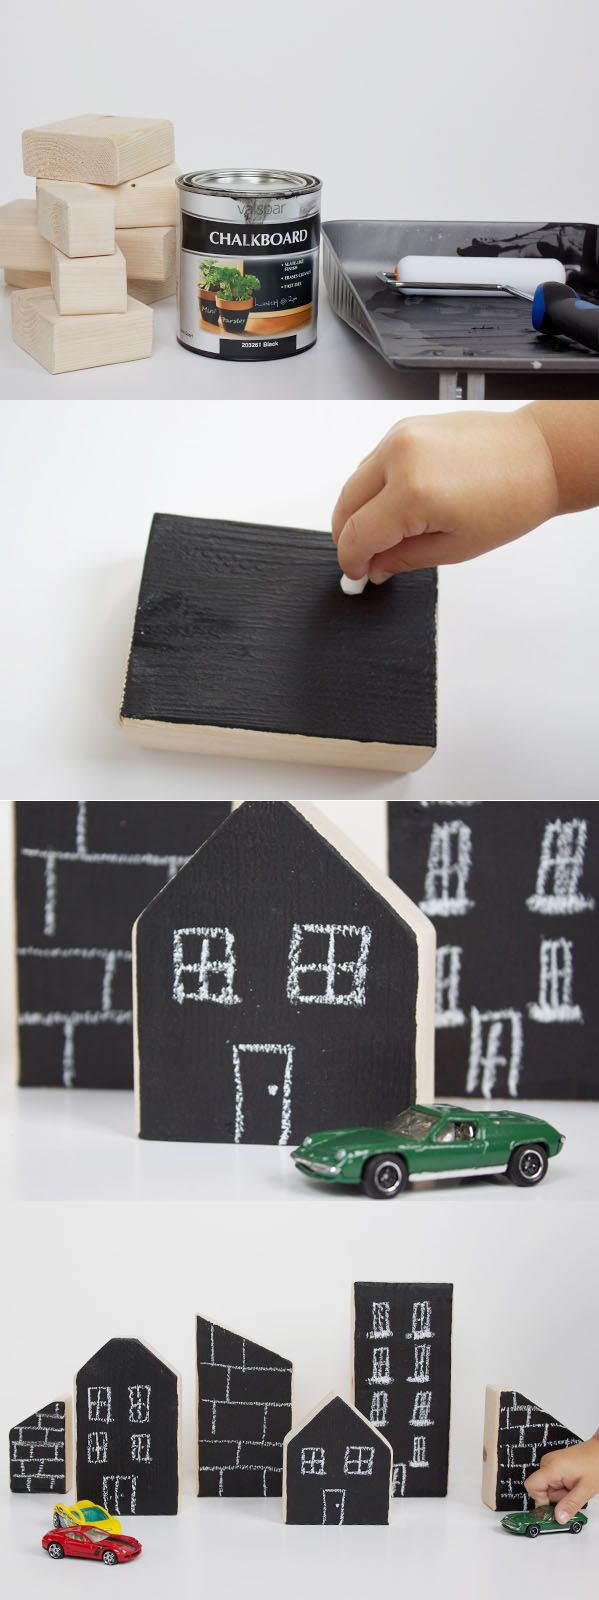 These DIY chalkboard city blocks would make a great holiday gift but I'm thinking these would be for adults to make. What a great imaginative gift.